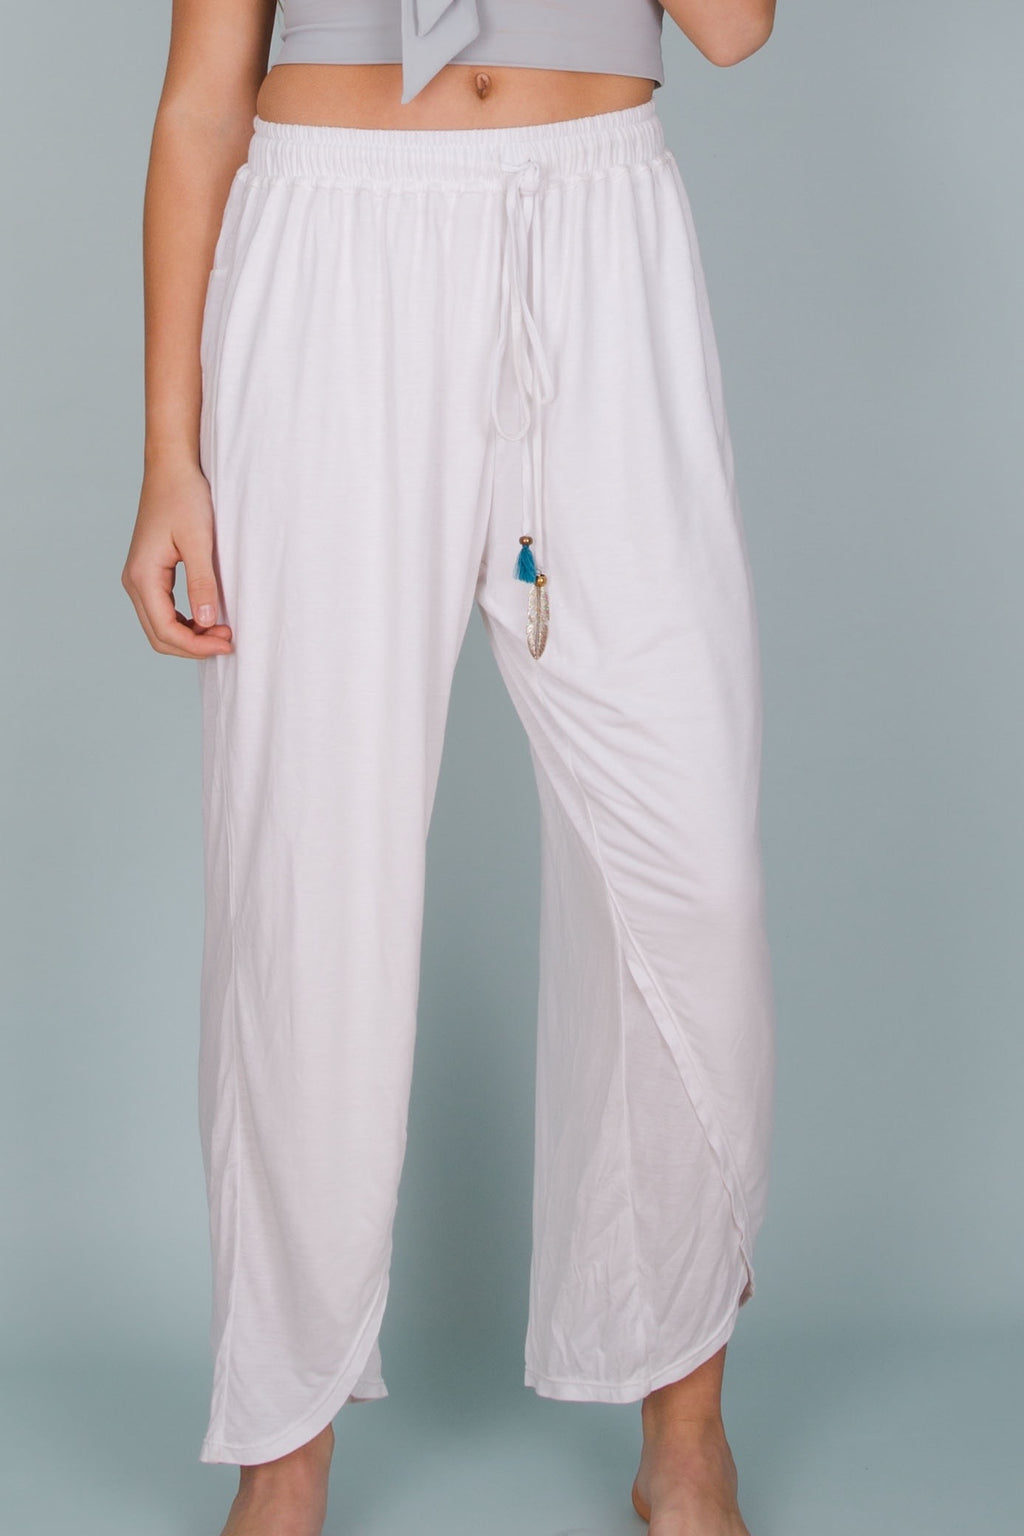 Ellis Pants - White